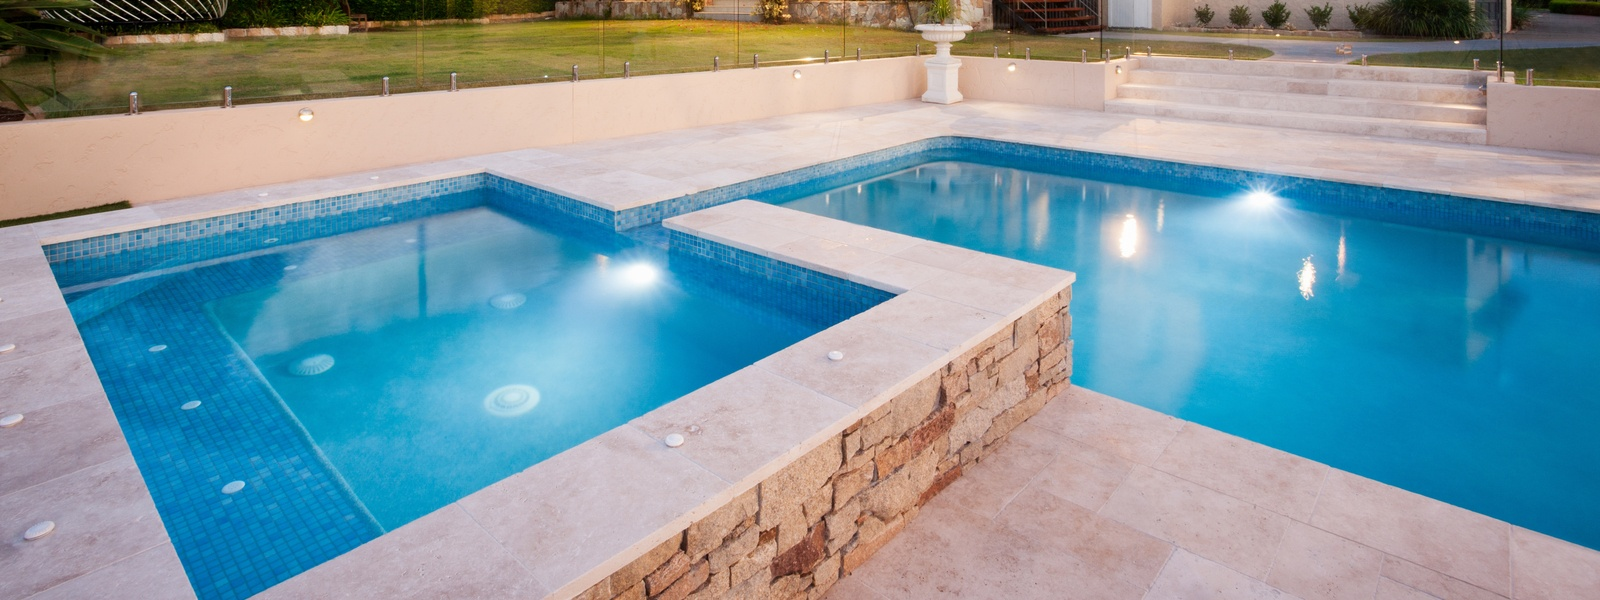 4 Benefits of Using LED Pool Lighting